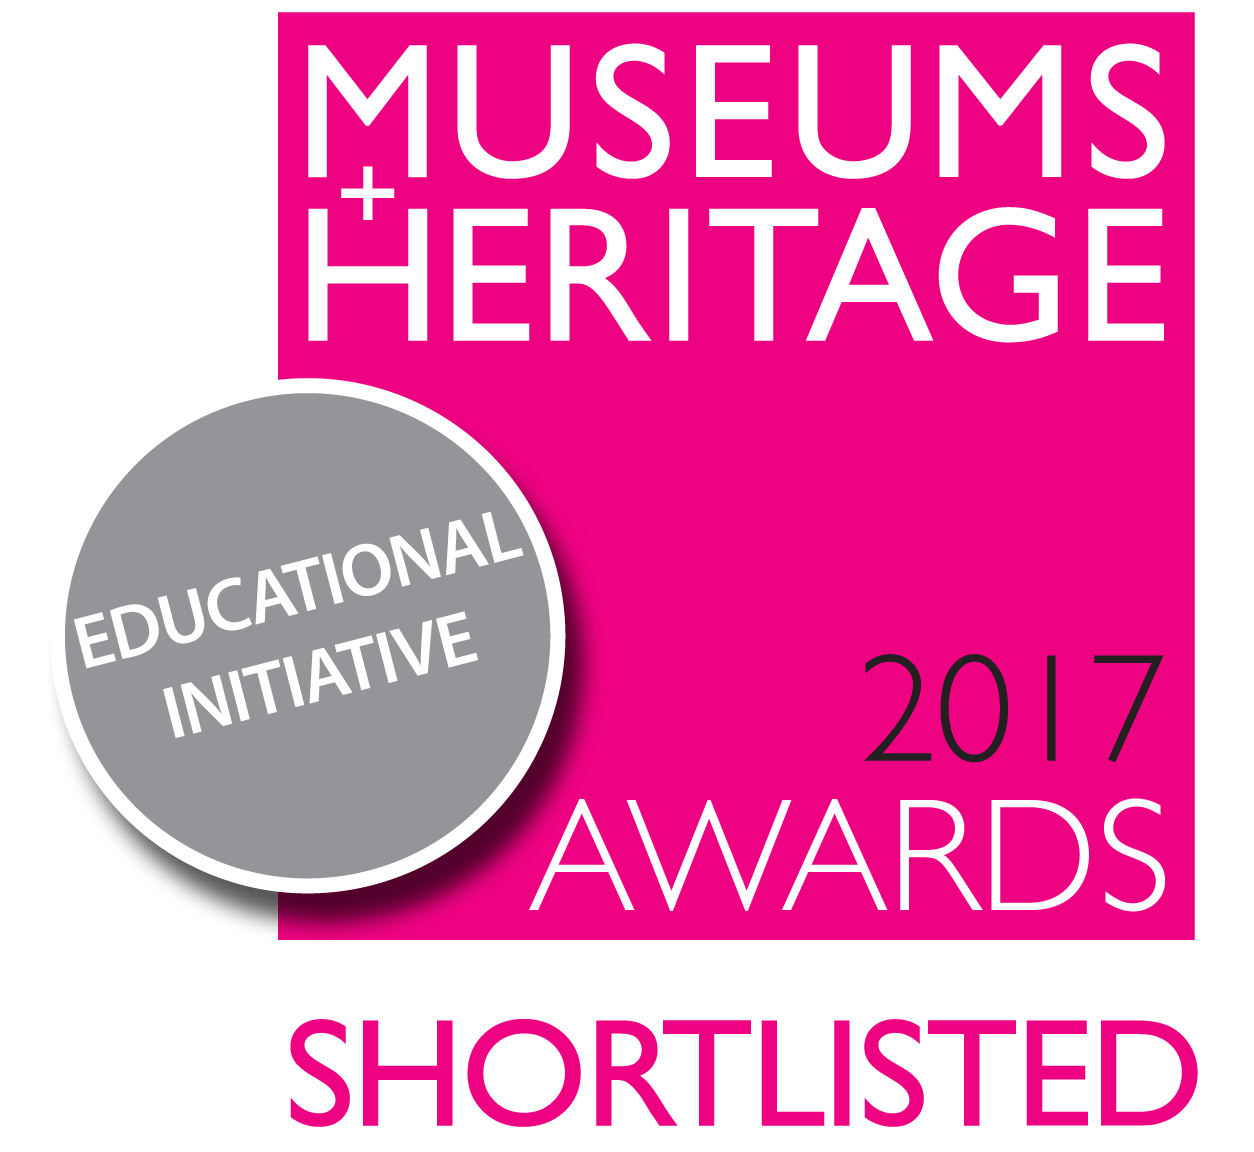 Shortlisted for the Museums + Heritage Educational Initiative award